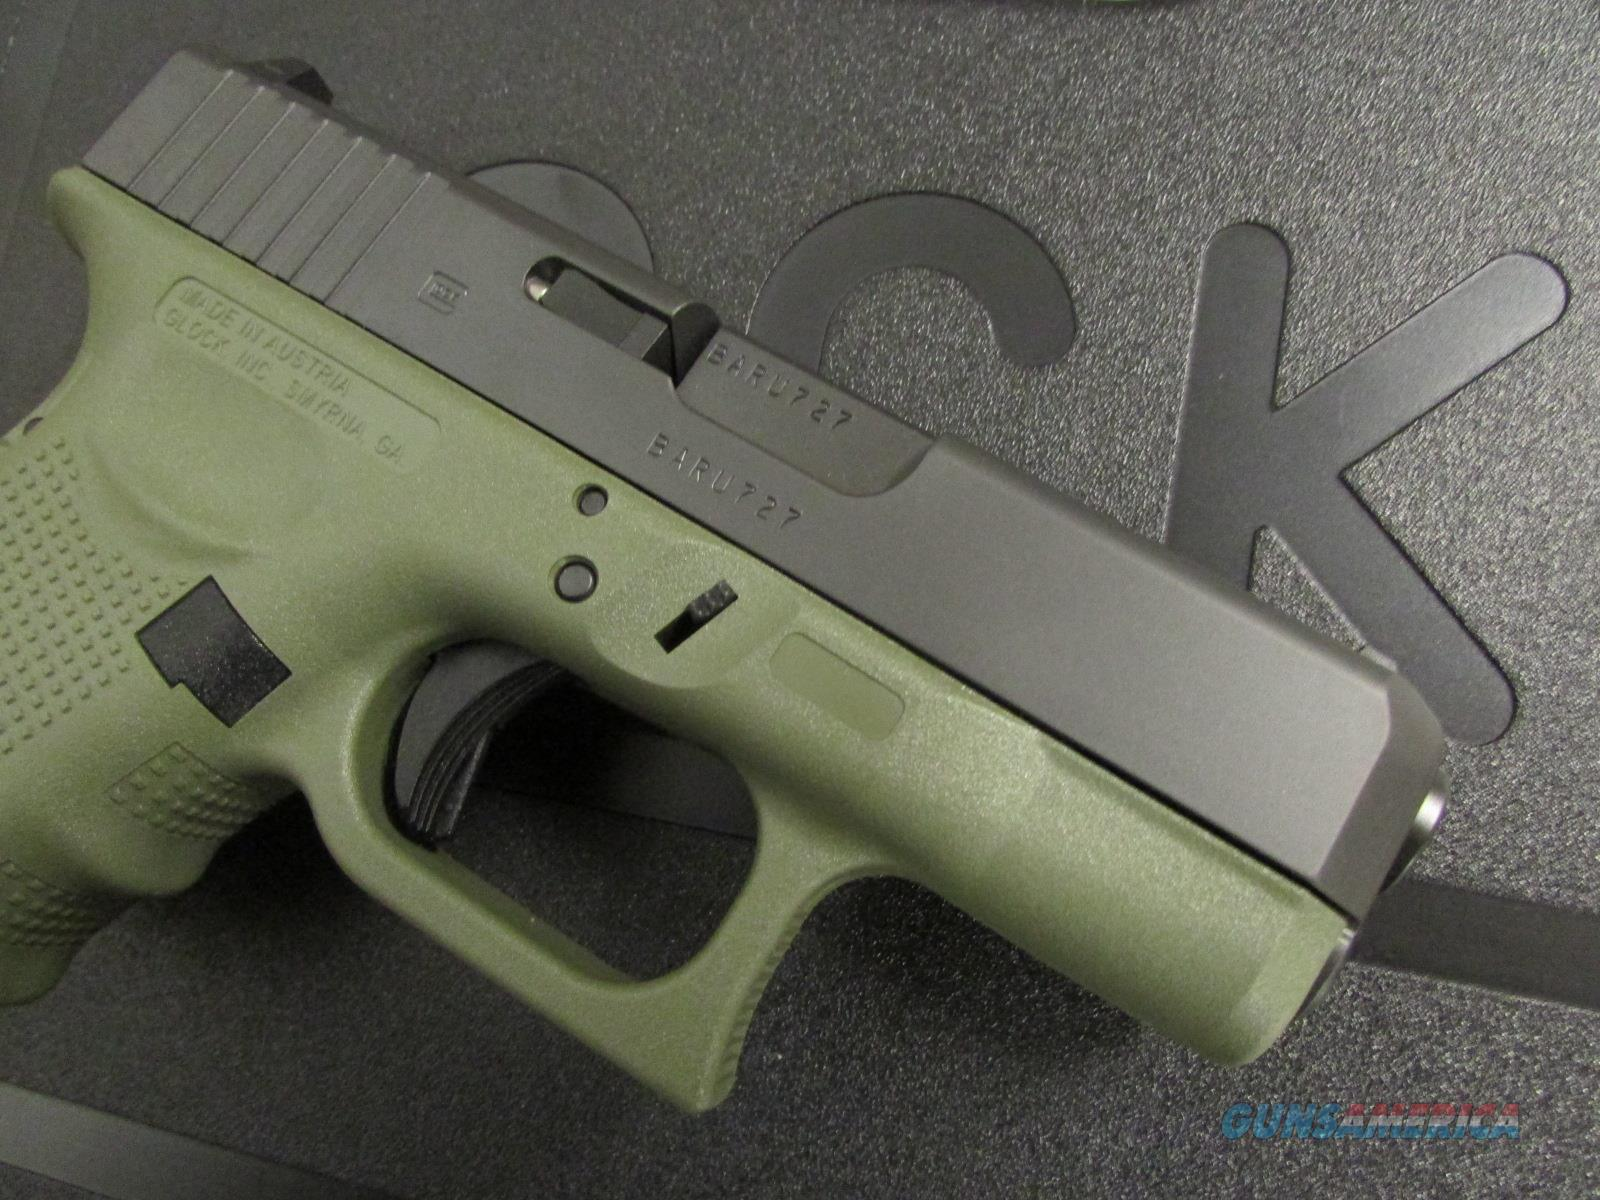 Glock 26 G26 Gen4 BFG Green Frame 9mm PG2650201... for sale